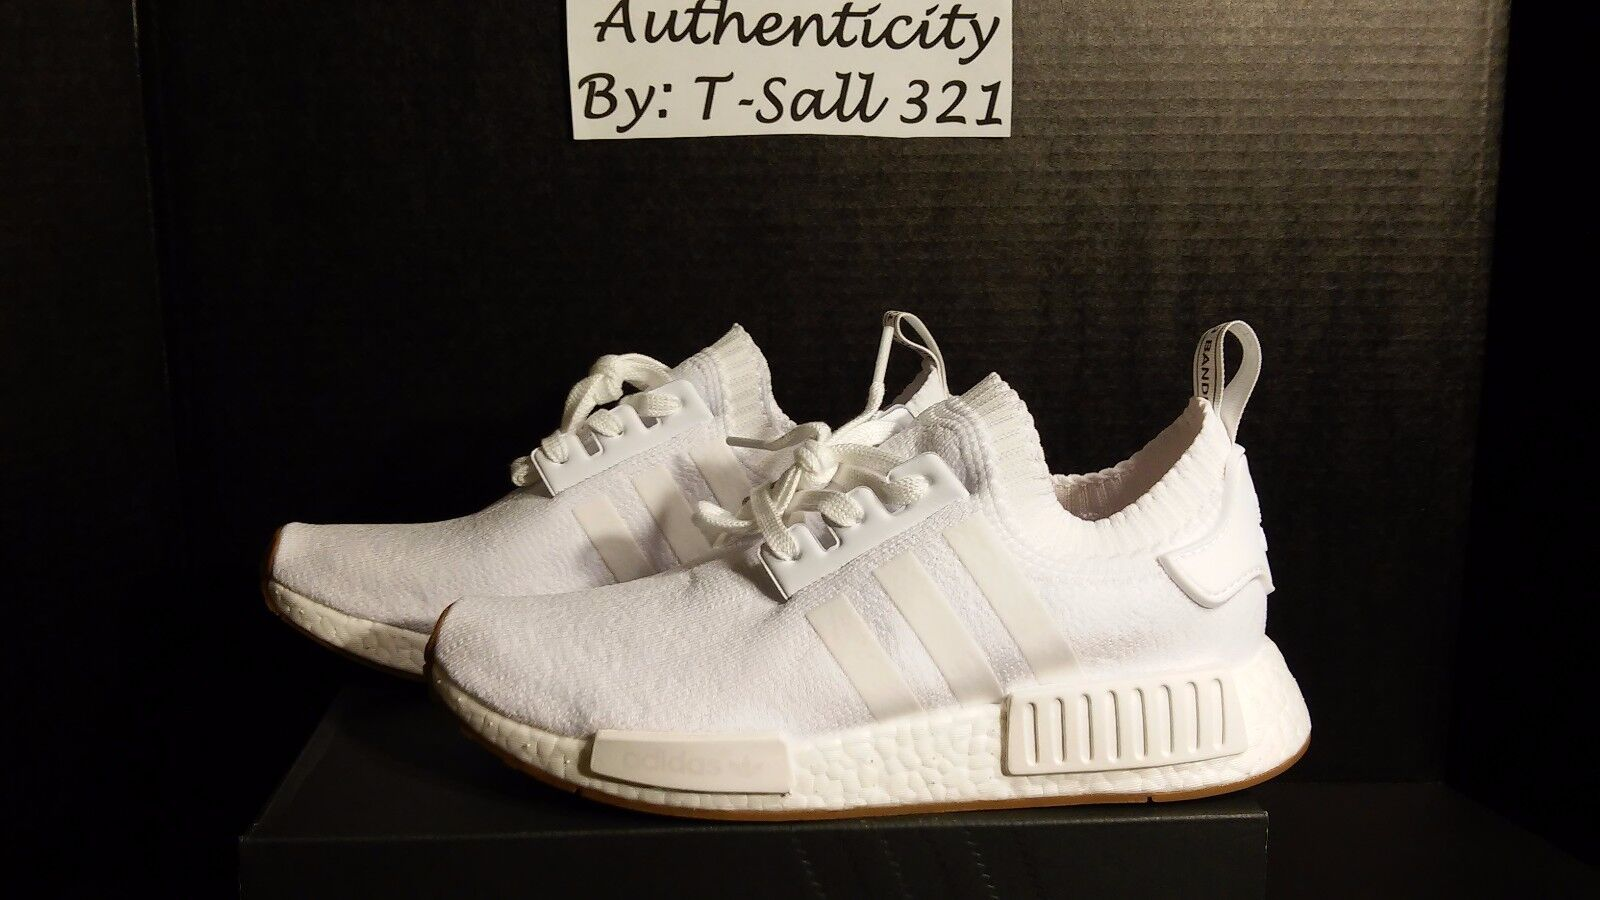 Adidas Nmd R1 PK White/Gum bottom size 9 US men's